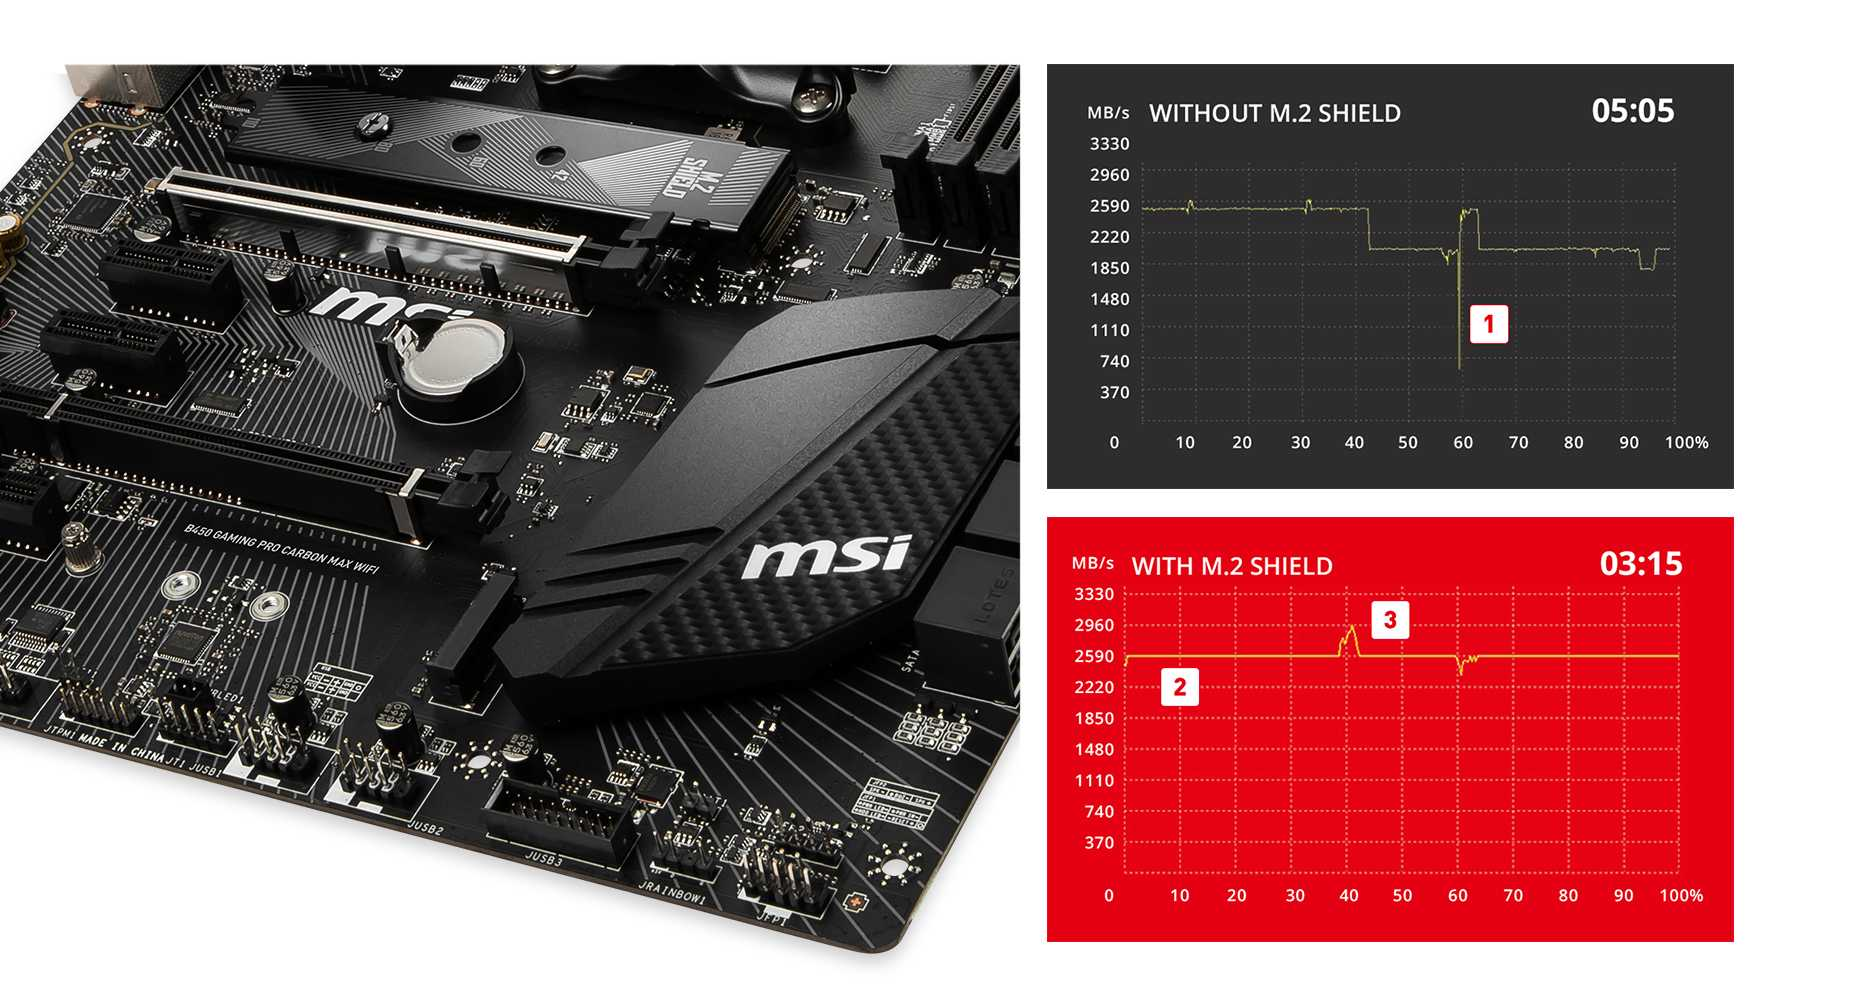 MSI B450 GAMING CARBON MAX WIFI M.2 SHIELD